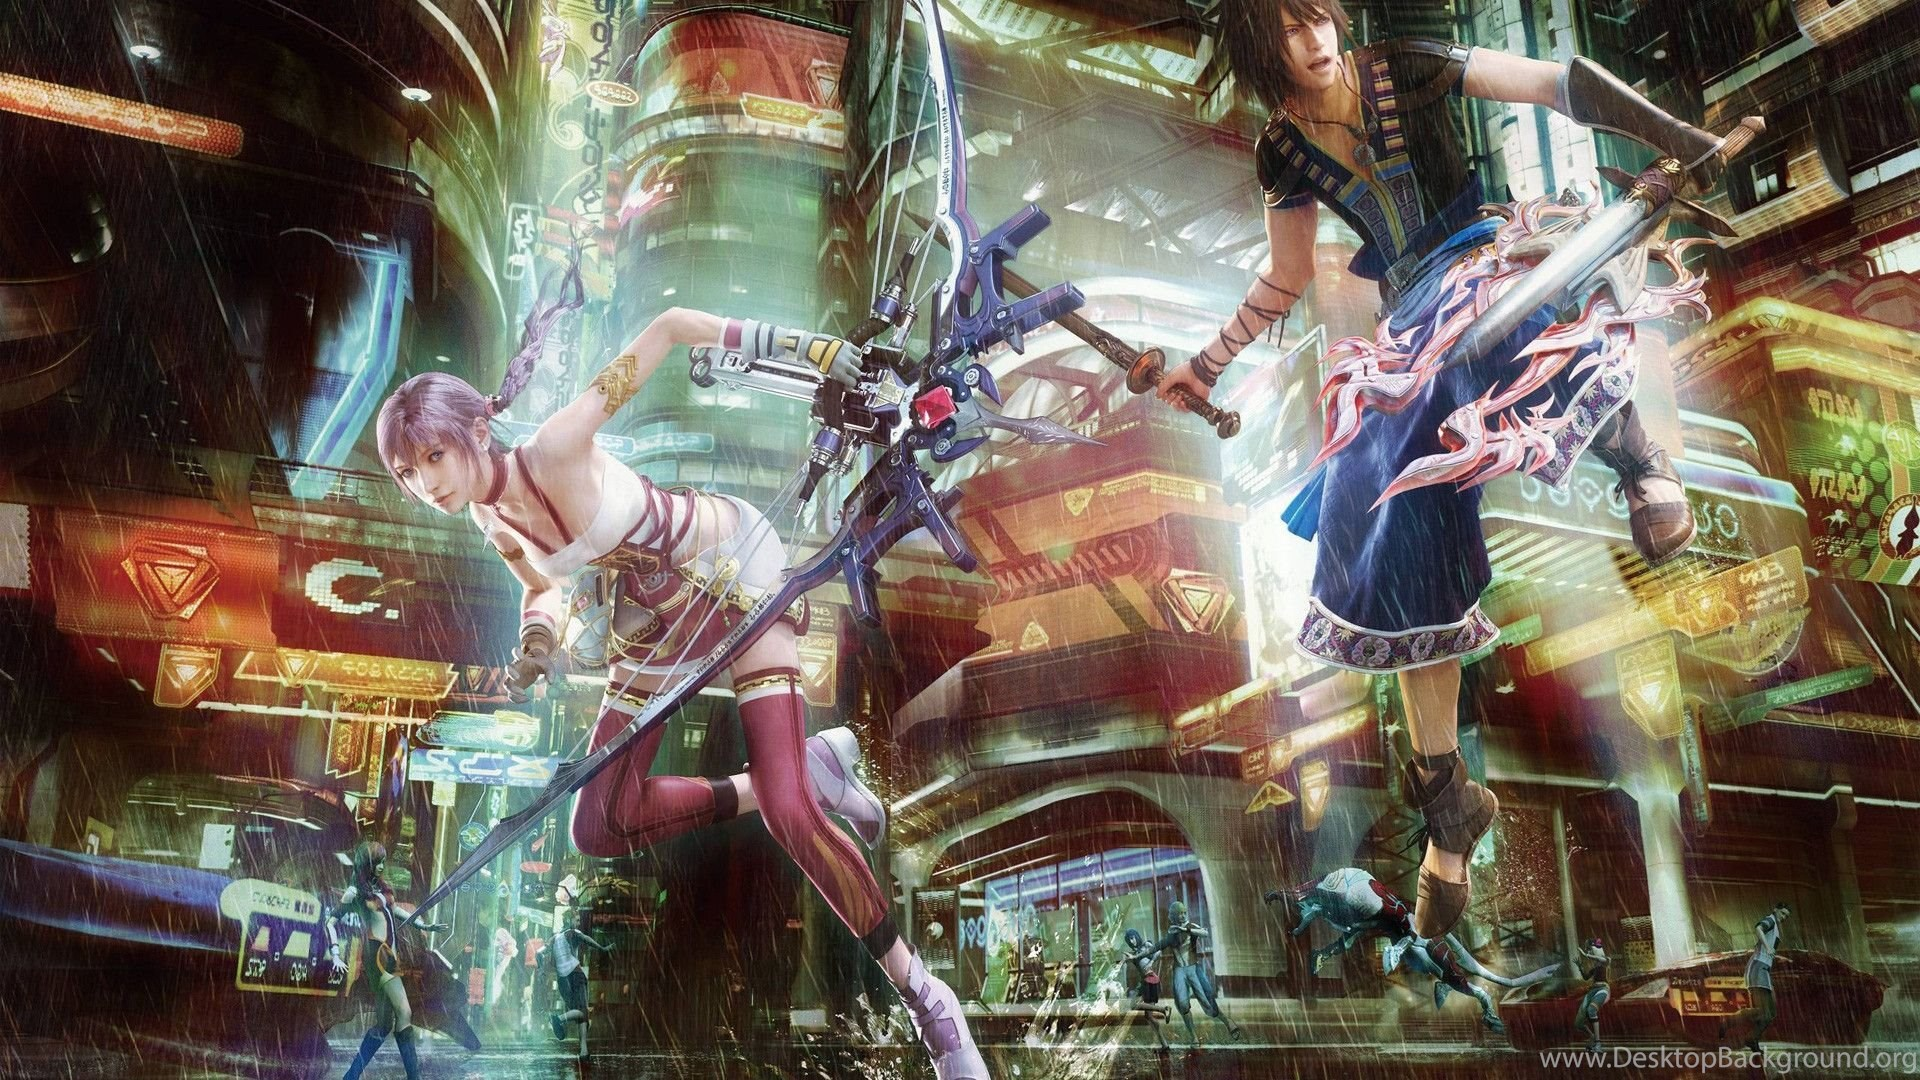 Final Fantasy Xiii Wallpapers 1080p Wallpapers Cave Desktop Background